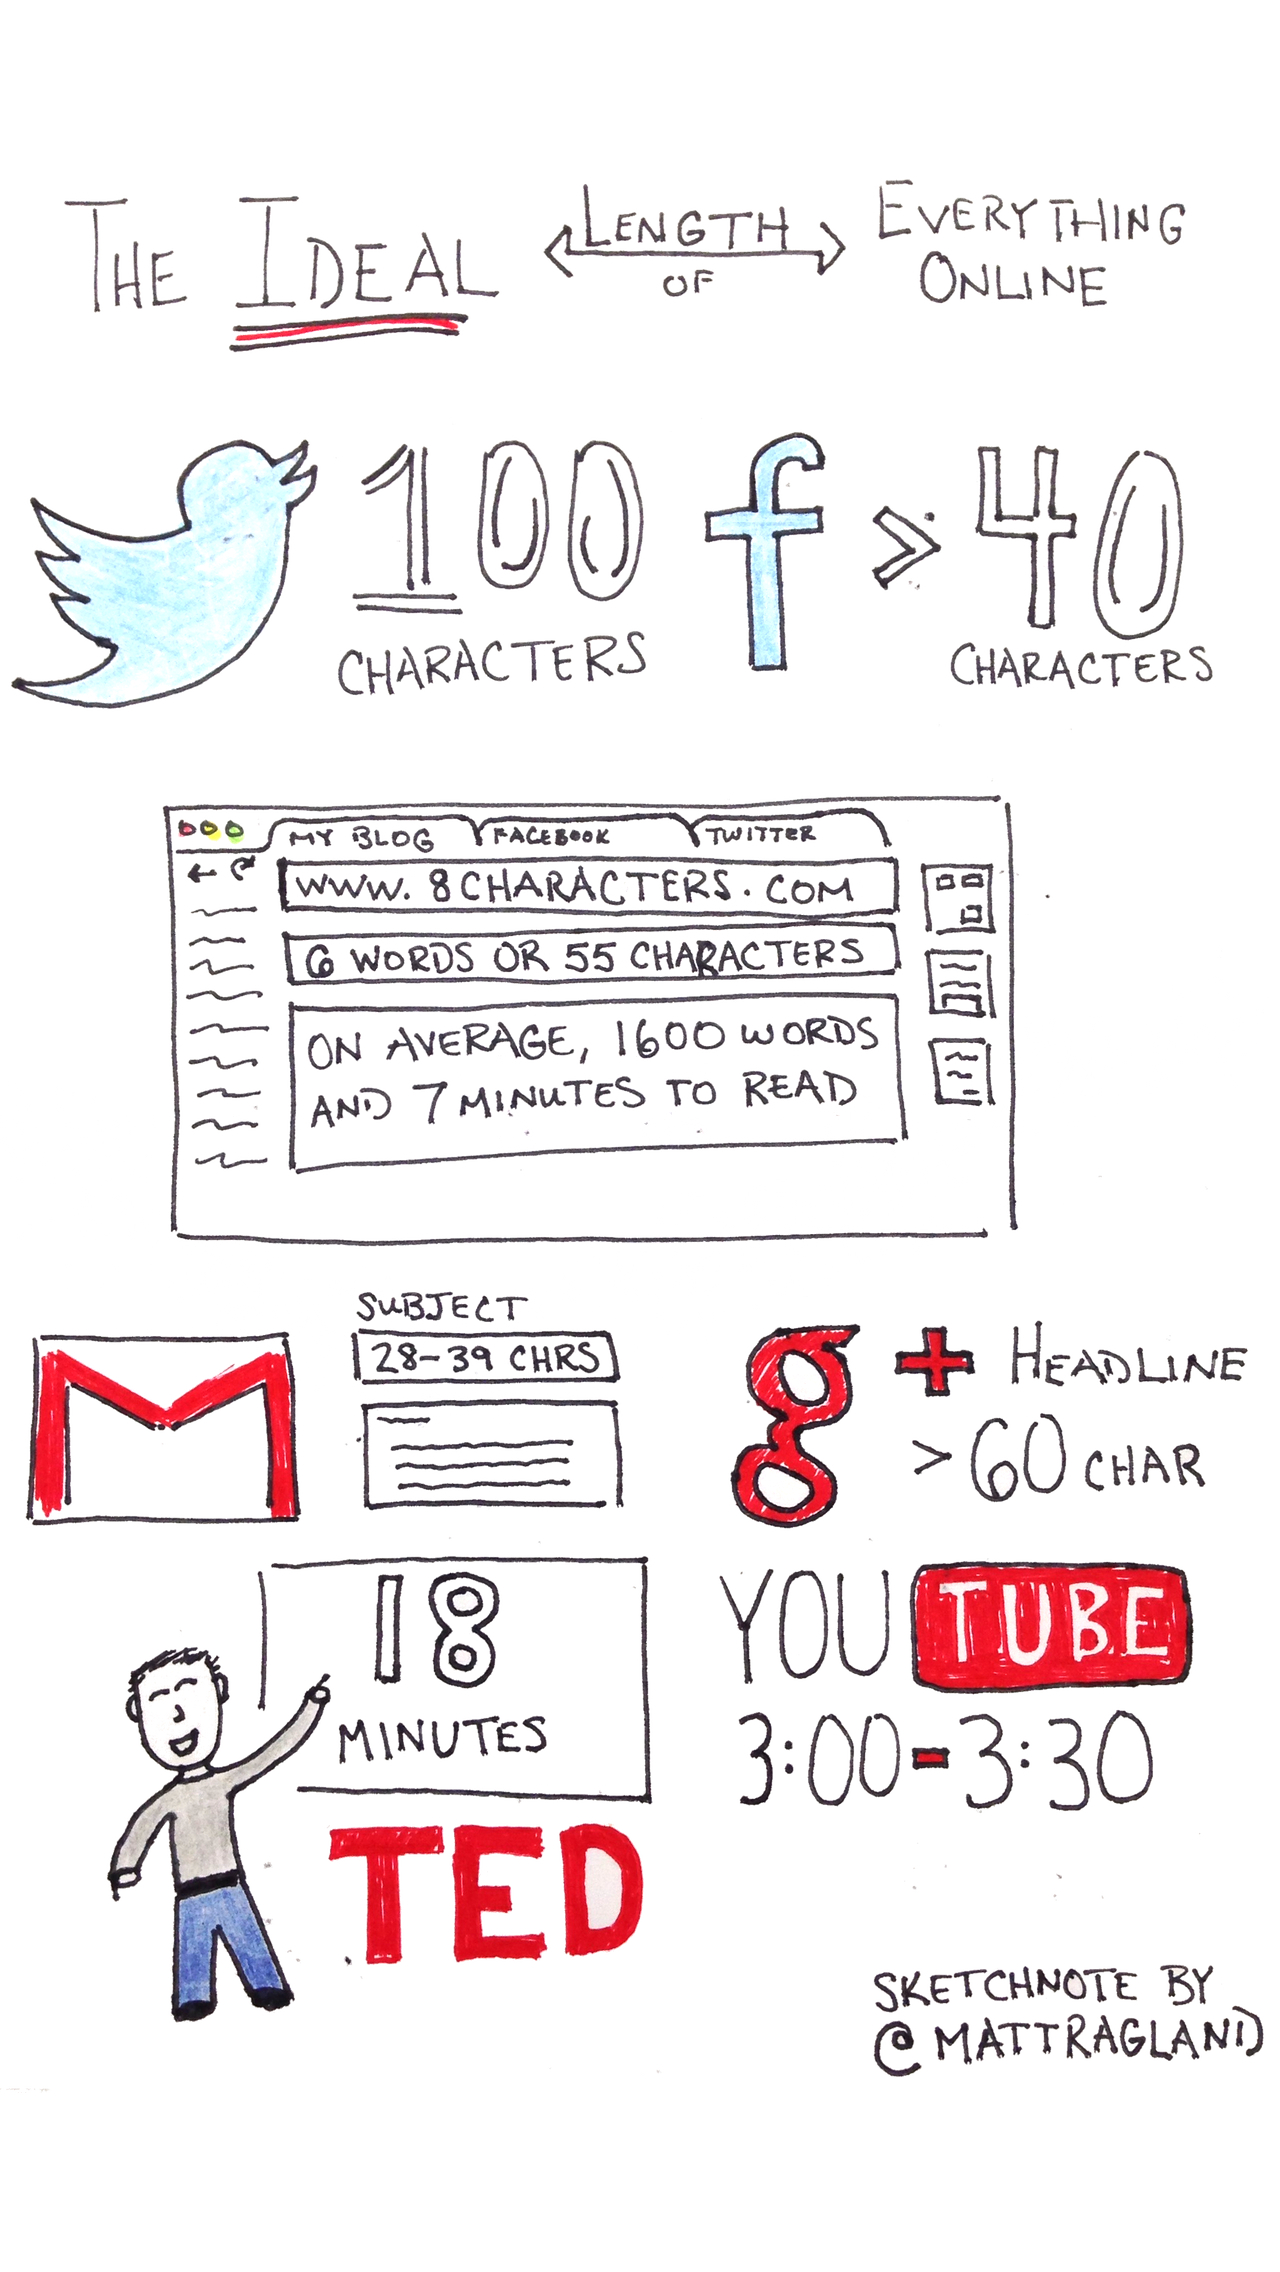 Sketchnote Saturday: The Ideal Length of Everything Online